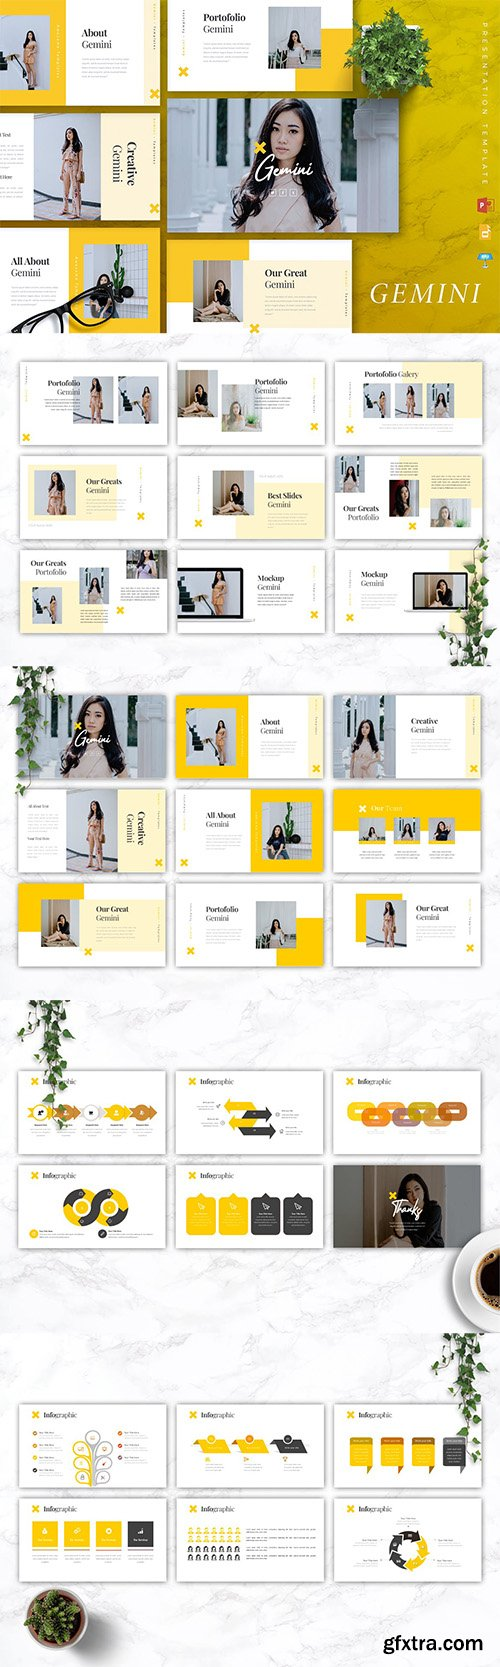 GEMINI Fashion Powerpoint/Google Slide/Keynote